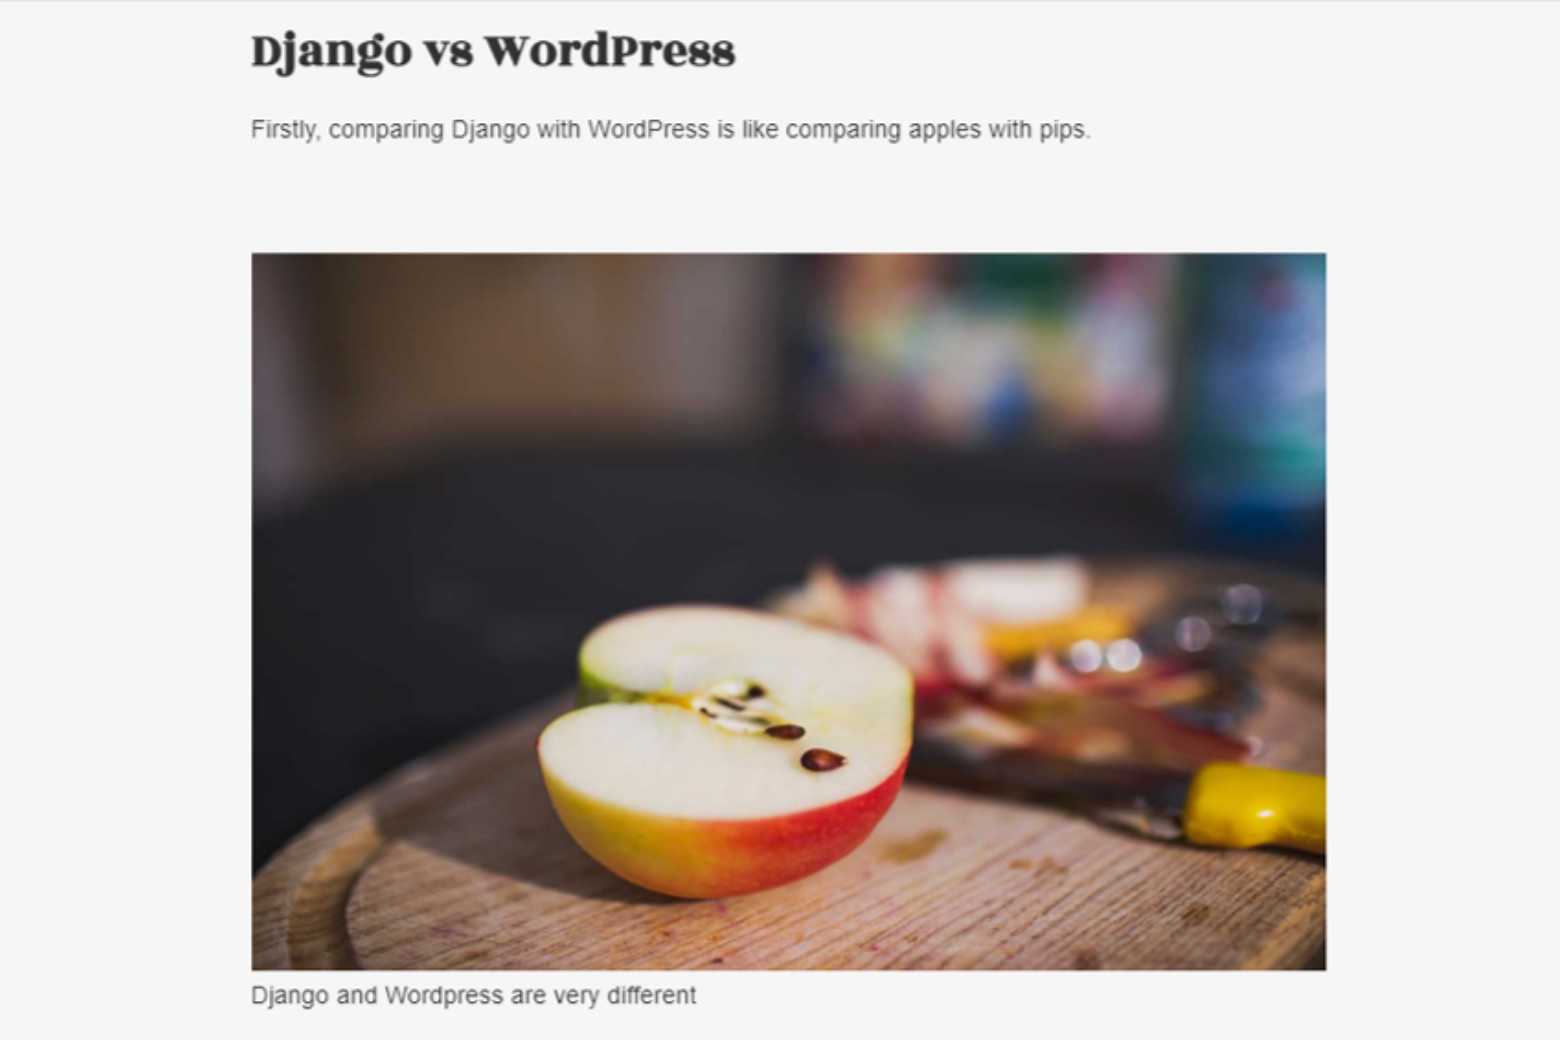 Django versus Wordpress websites